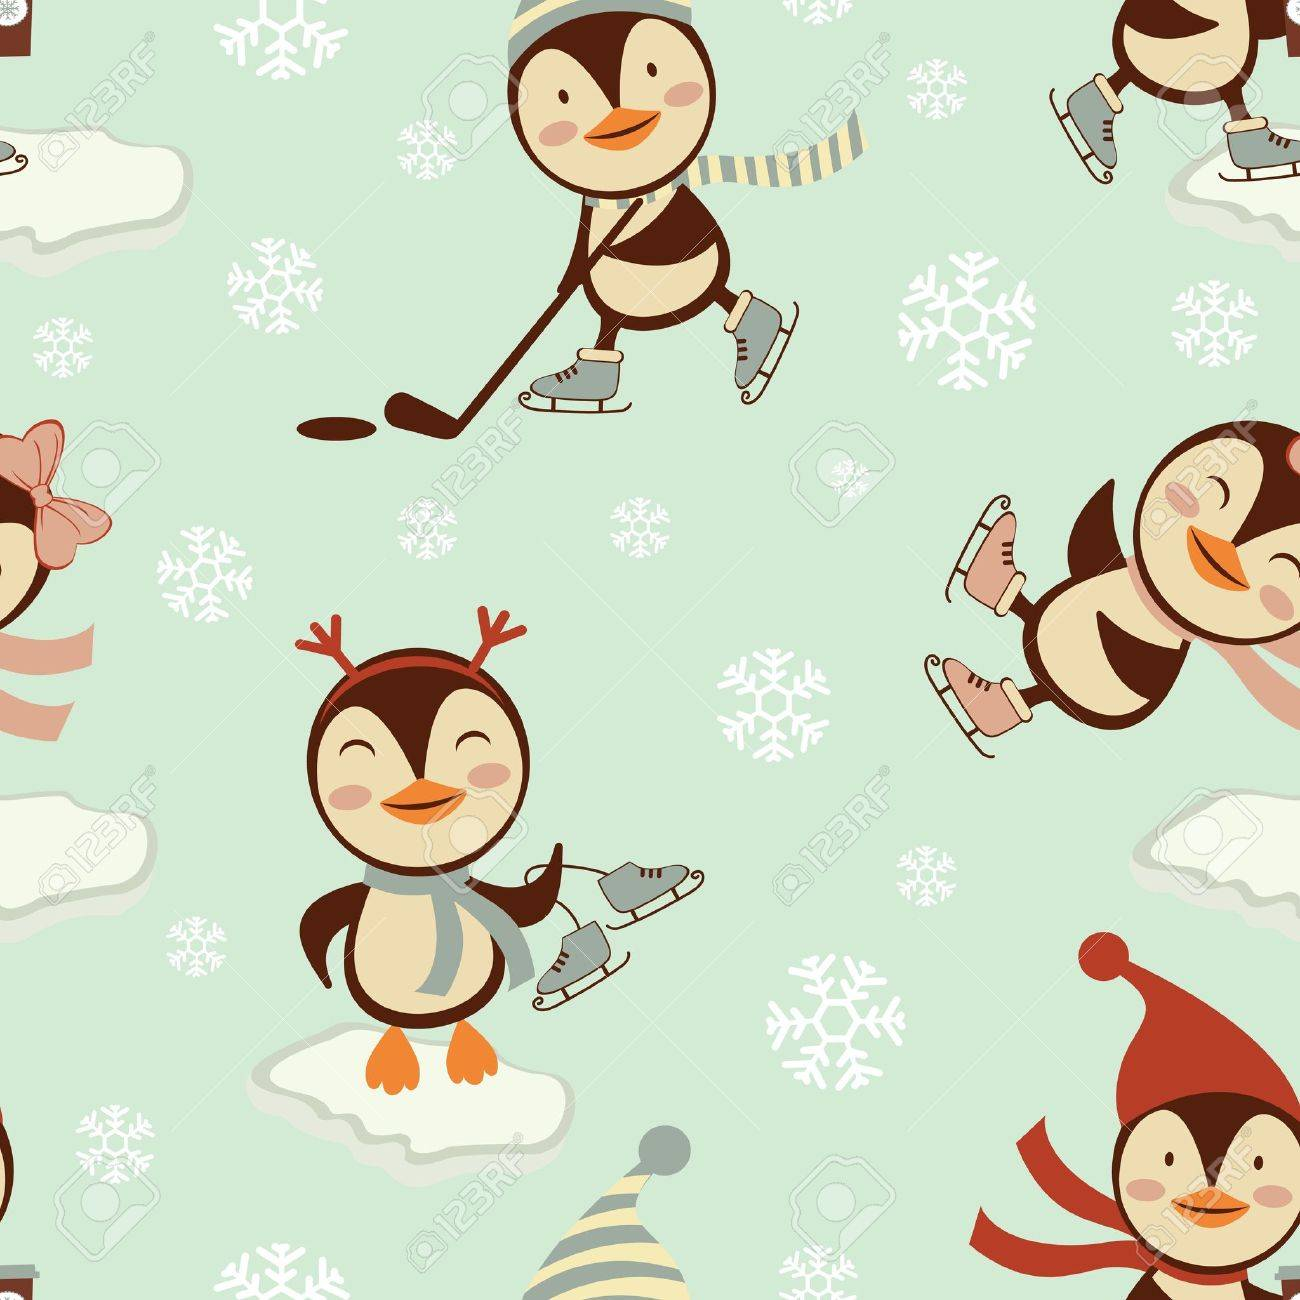 Funny penguins skating on ice seamless pattern Stock Vector - 16728016